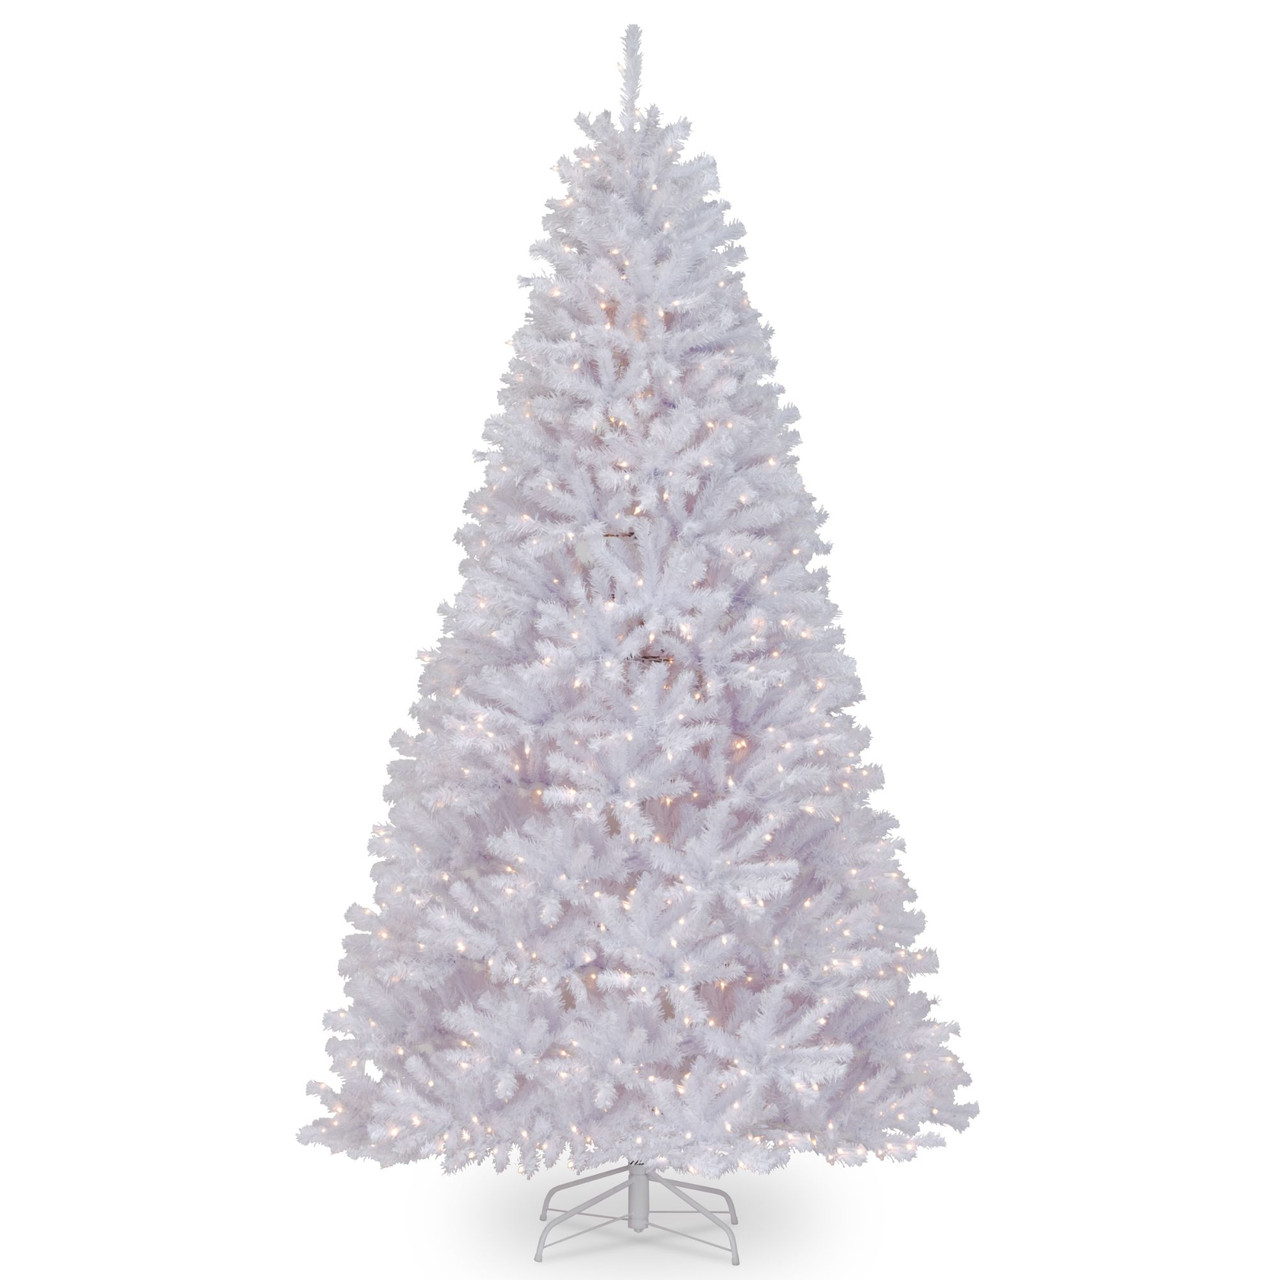 9 Artificial Christmas Tree.9 Pre Lit North Valley White Spruce Artificial Christmas Tree Clear Lights 33368369